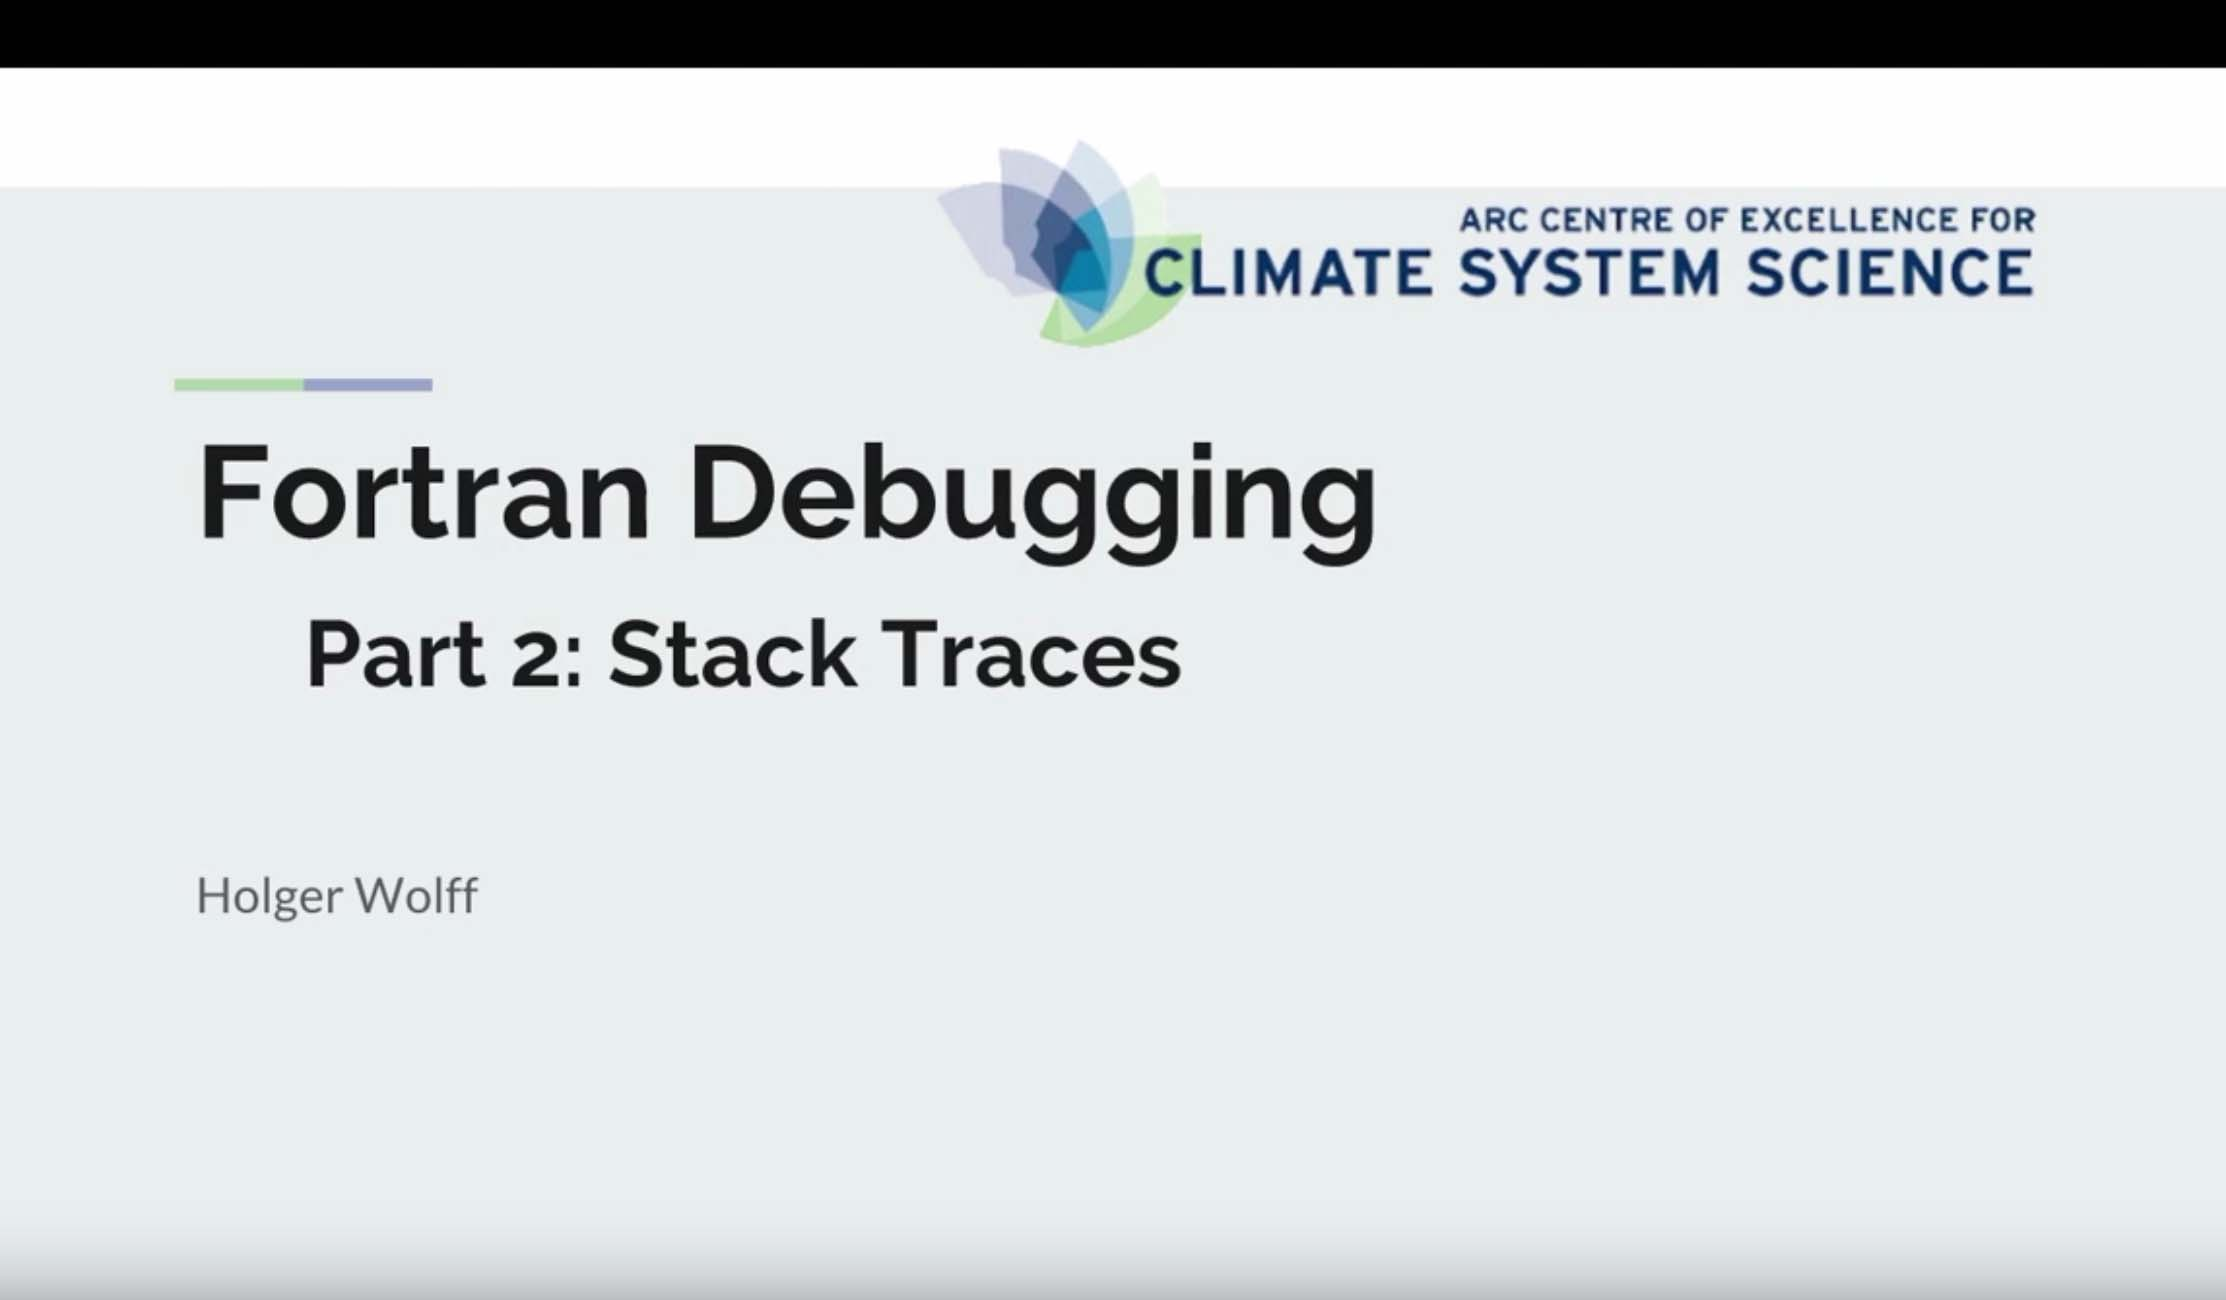 Fortran debugging - Part 2 stack traces | CLEX